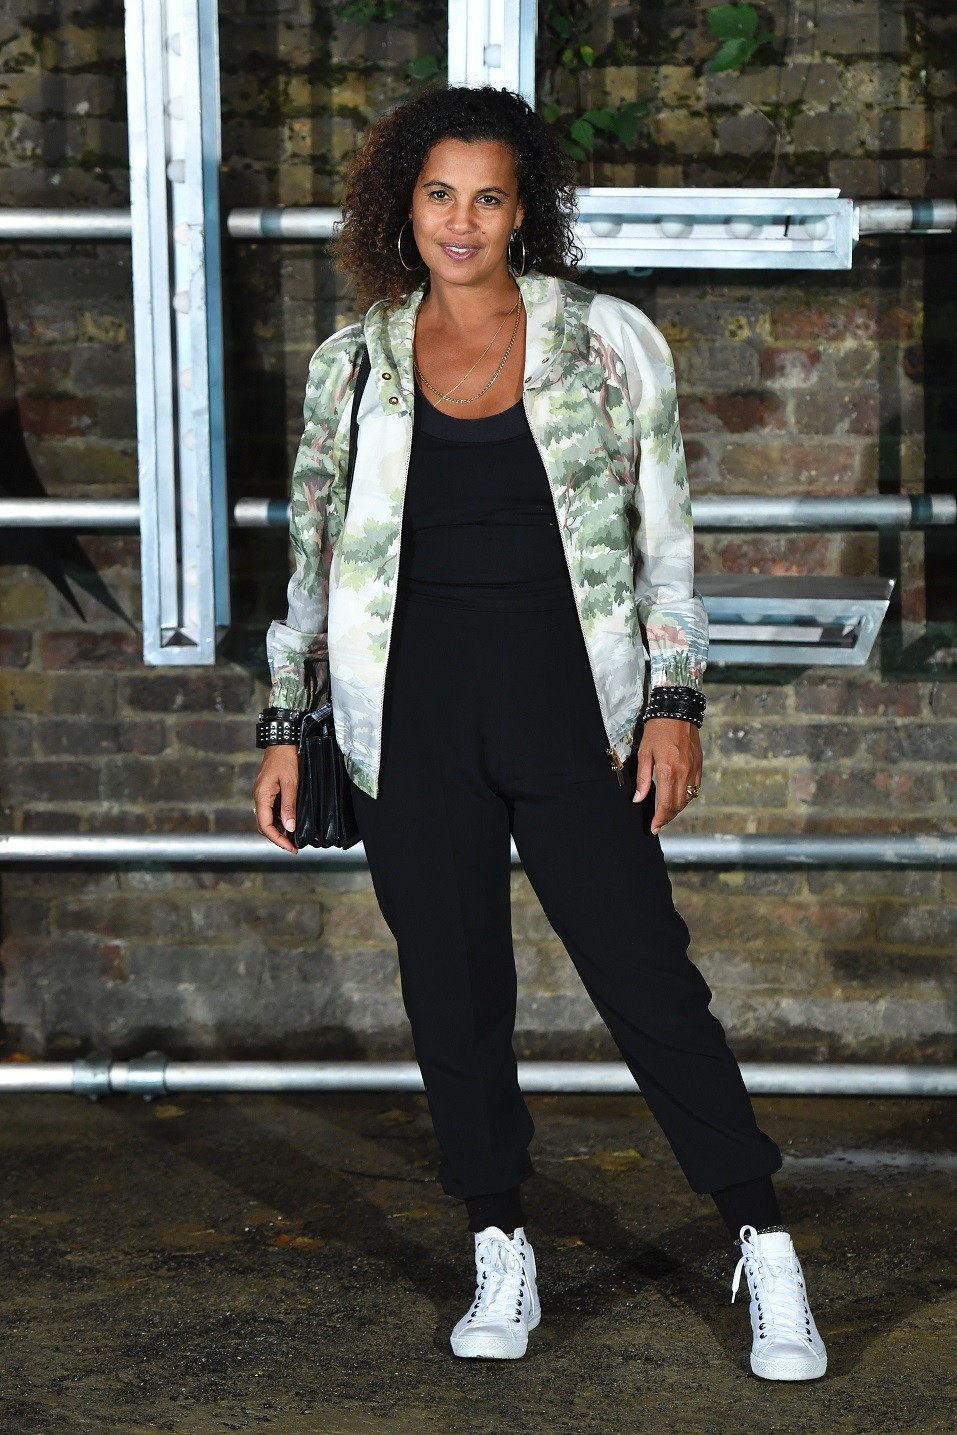 Swedish singer-songwriter Neneh Cherry poses arriving to attend the Stella McCartney menswear launch